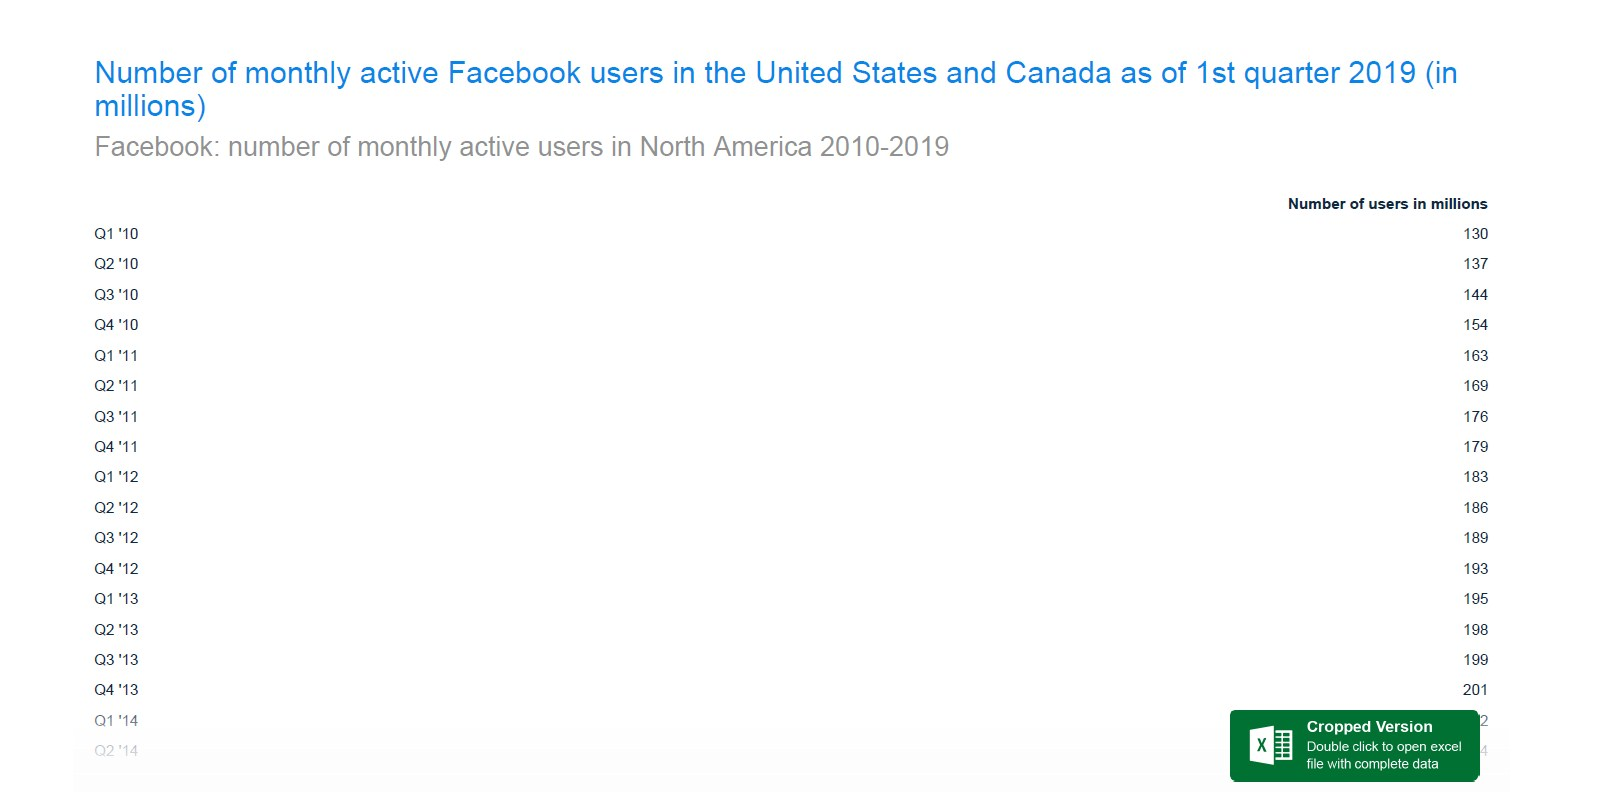 America and Canada account for 10.2% of all Facebook users